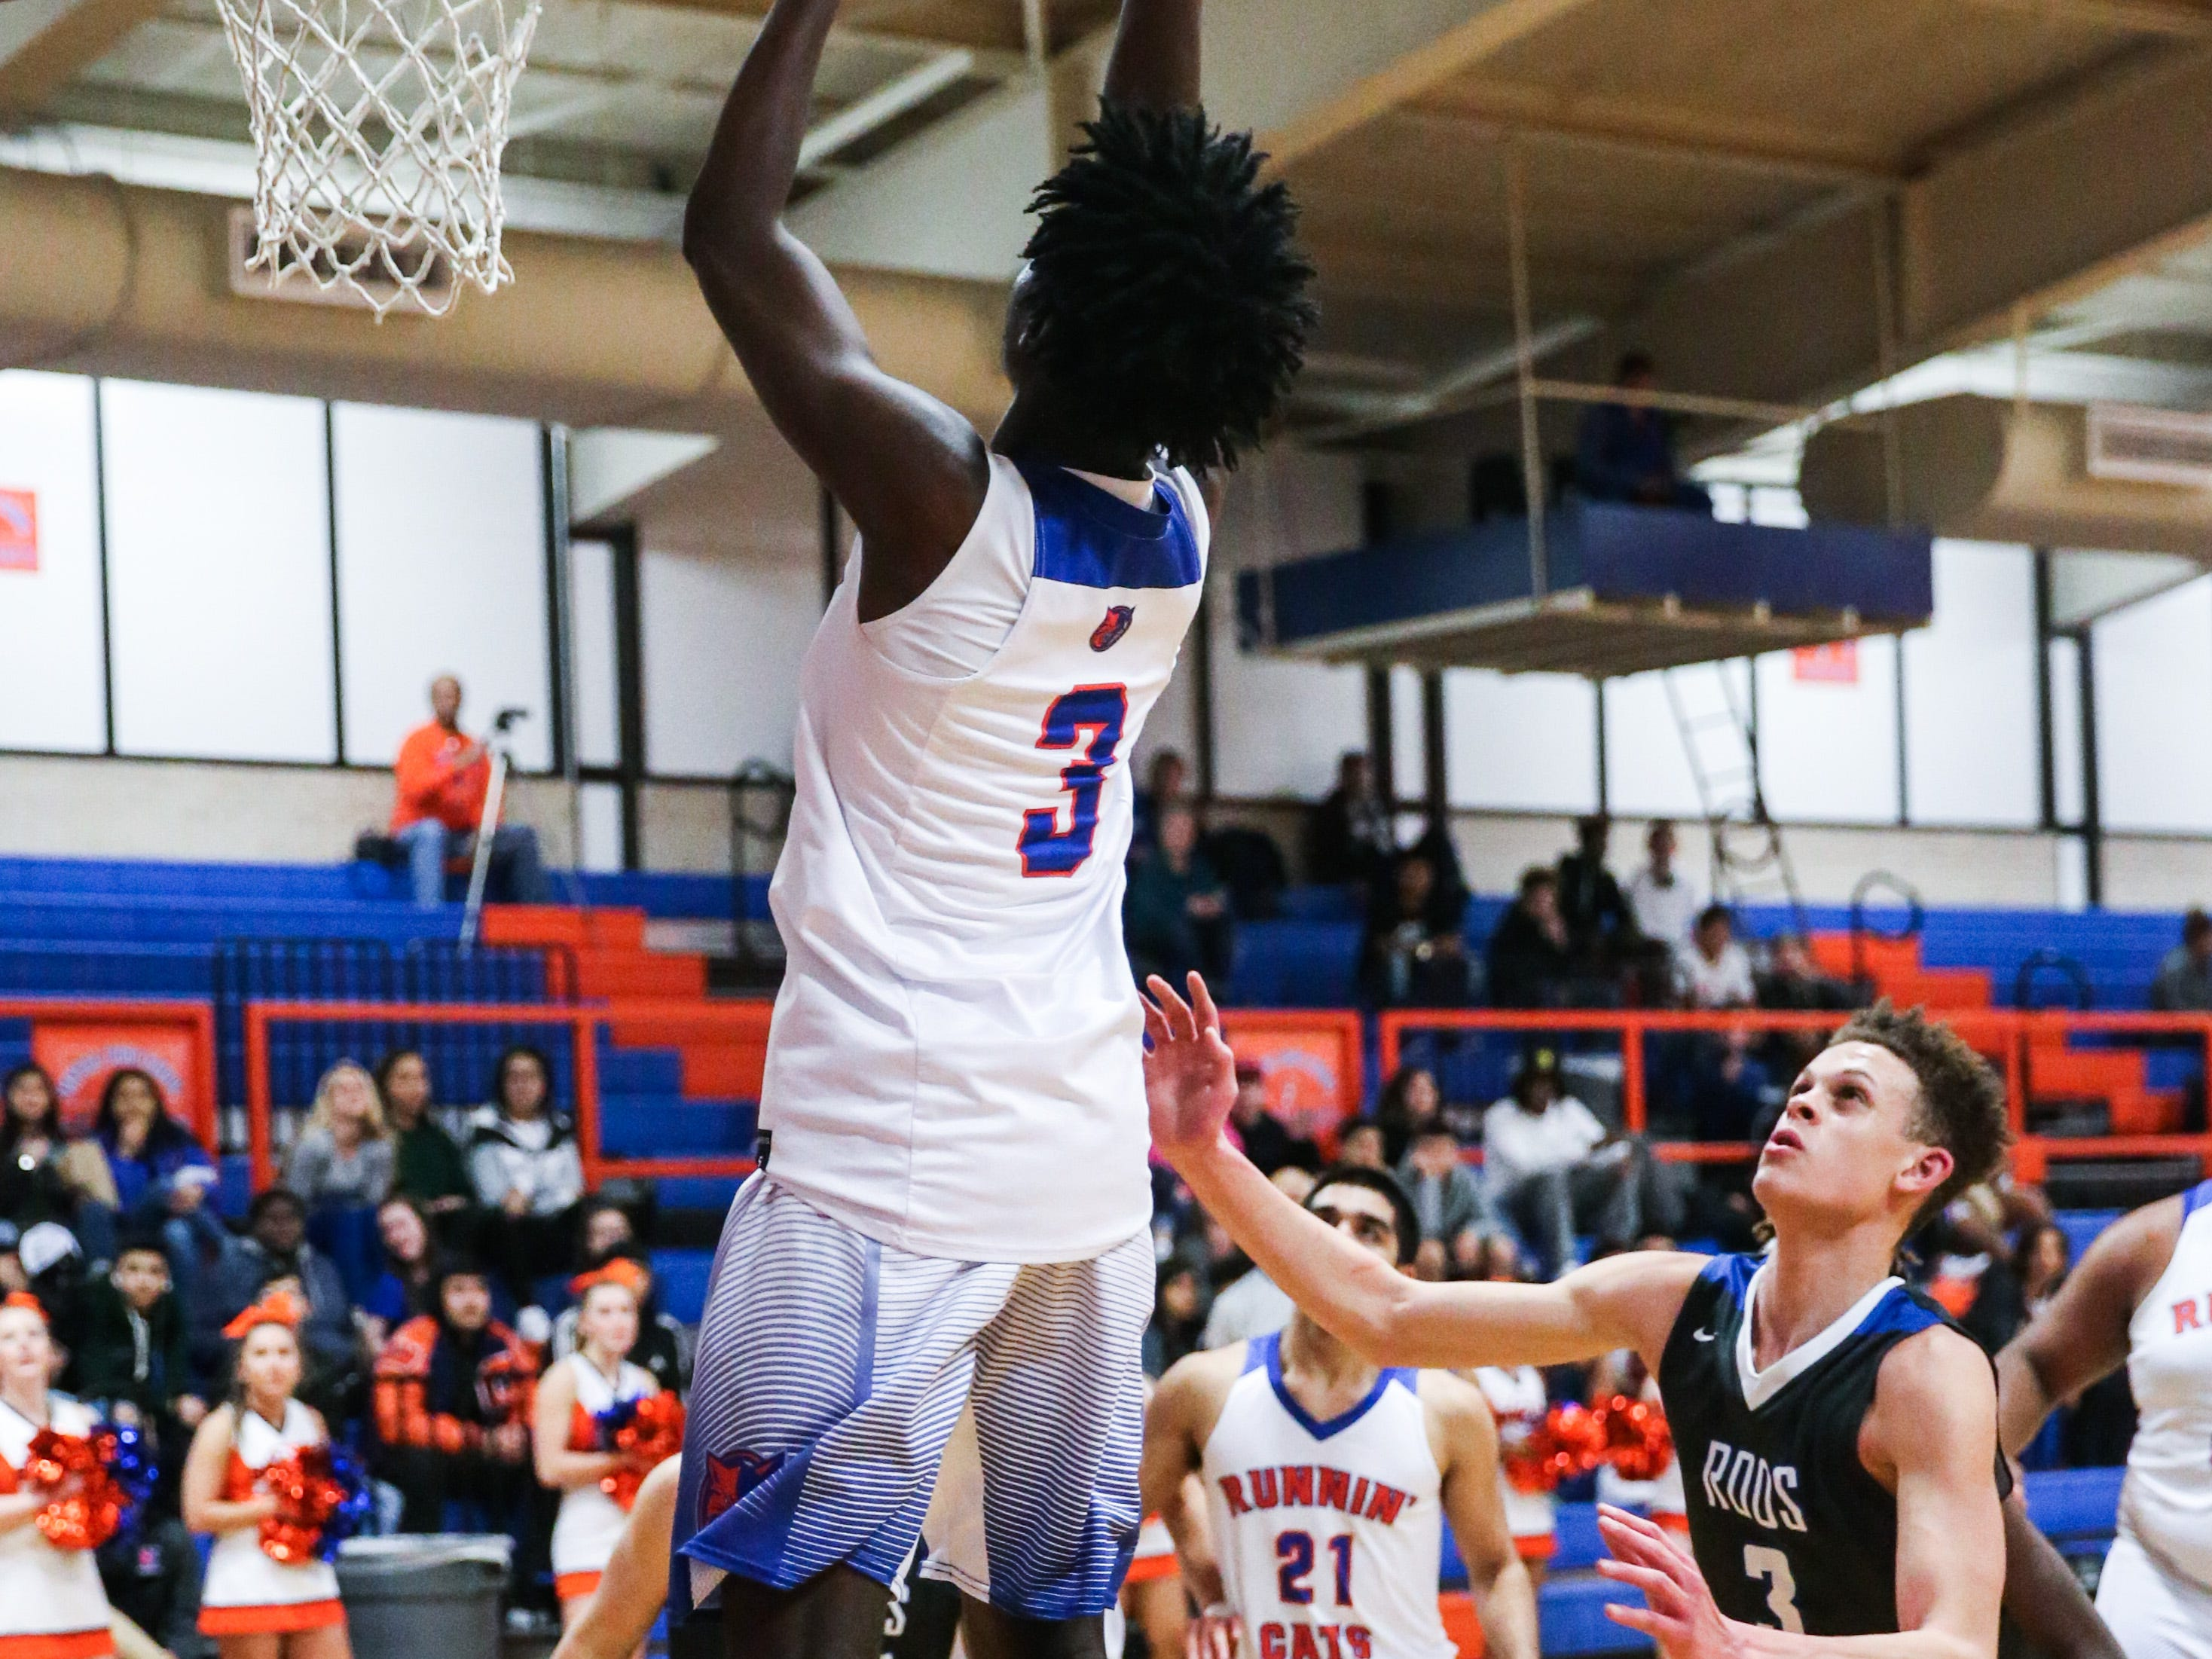 Central's Jashon Hall jumps to shoot against Weatherford Tuesday, Jan. 22, 2019, at Central High School.